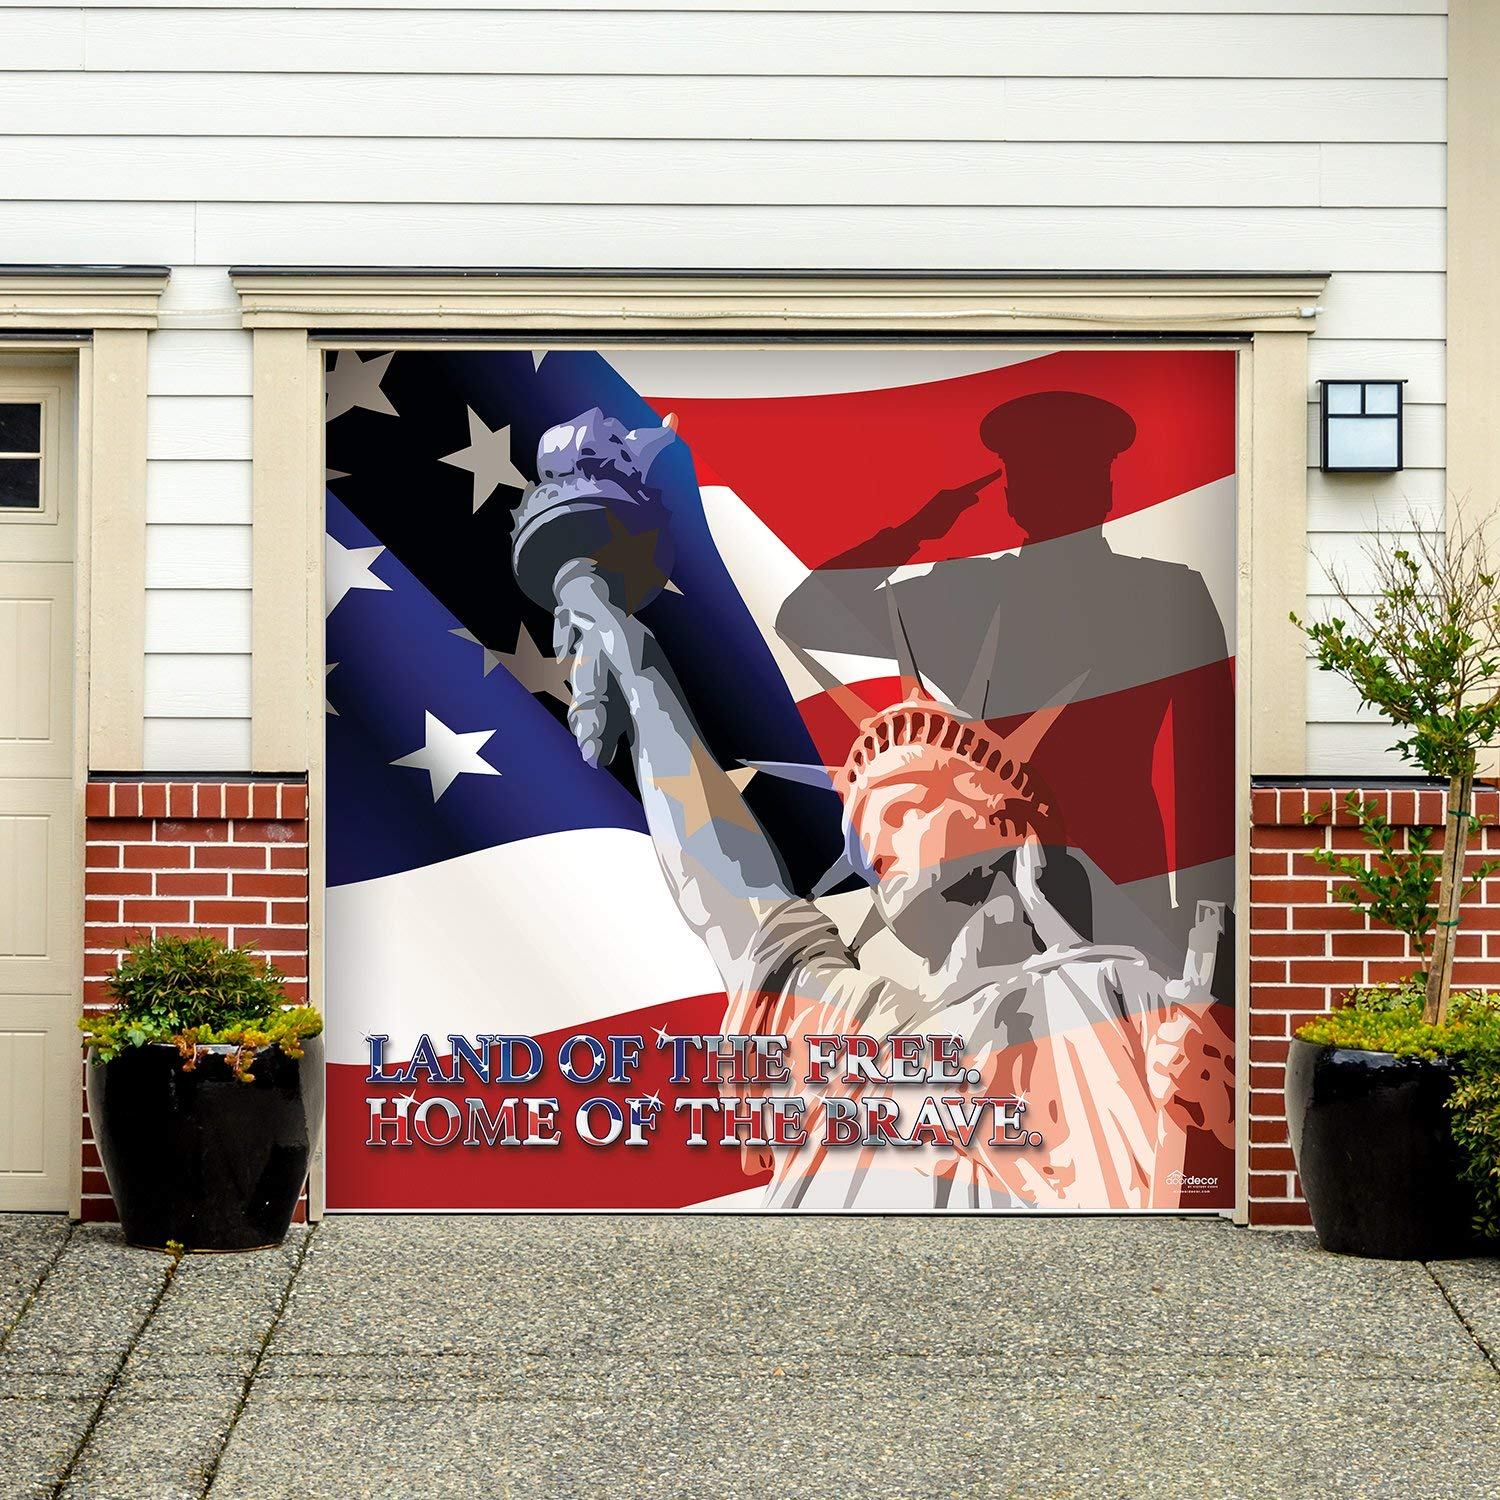 Victory Corps Outdoor Patriotic American Holiday Garage Door Banner Cover Mural Décoration - USA Military Brave and Free Patriotic Garage Door Banner Décor Sign 7'x8'